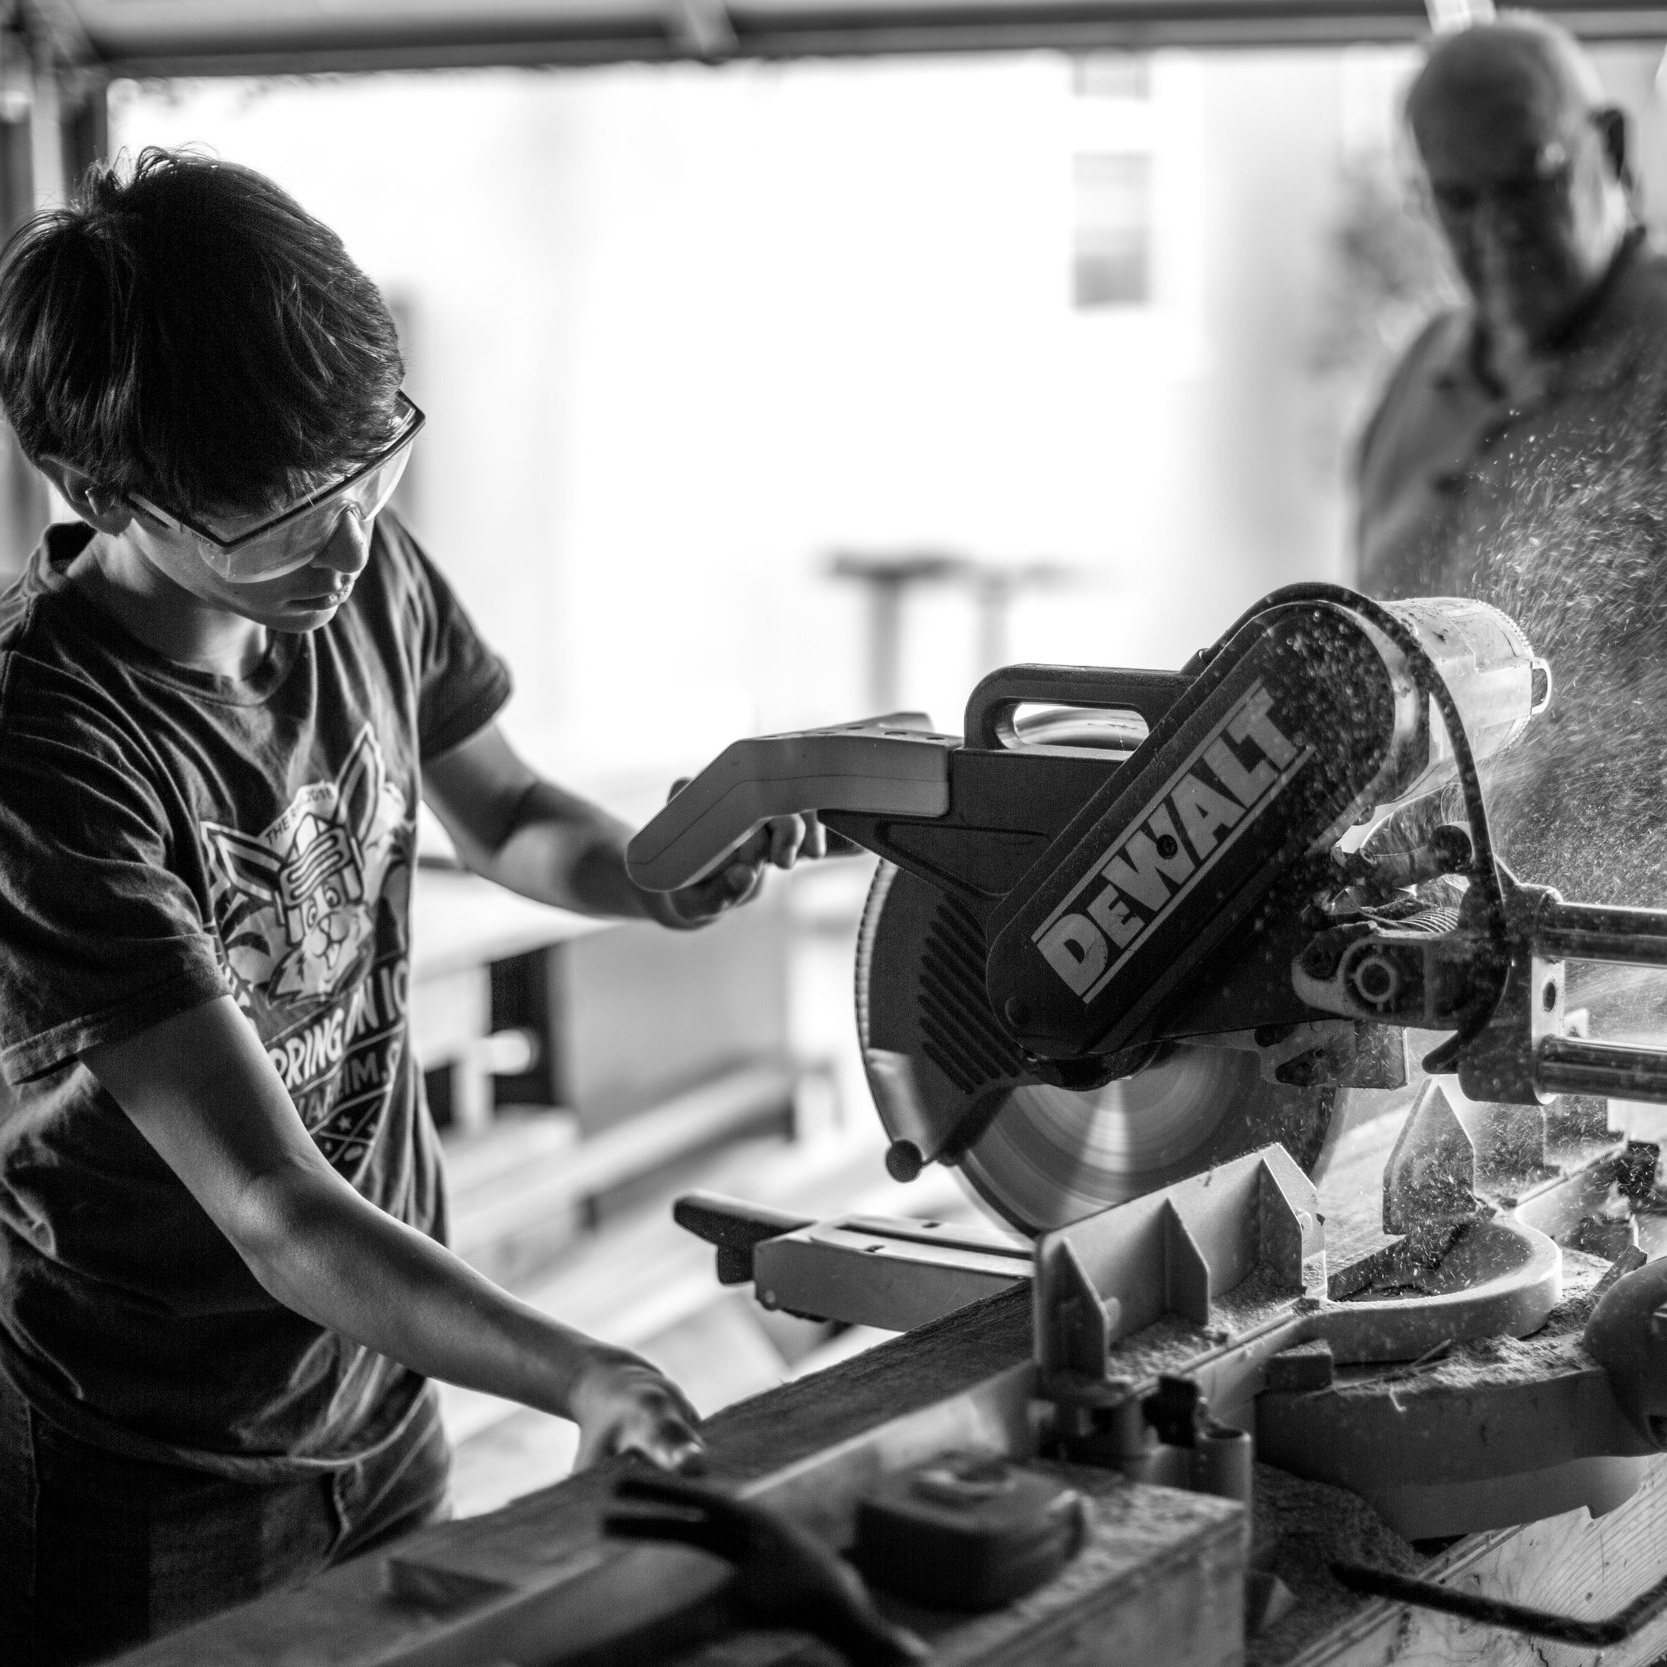 Vocational Training - Our Vocational Training program covers individual career paths in the construction and trades industries.Read More —>